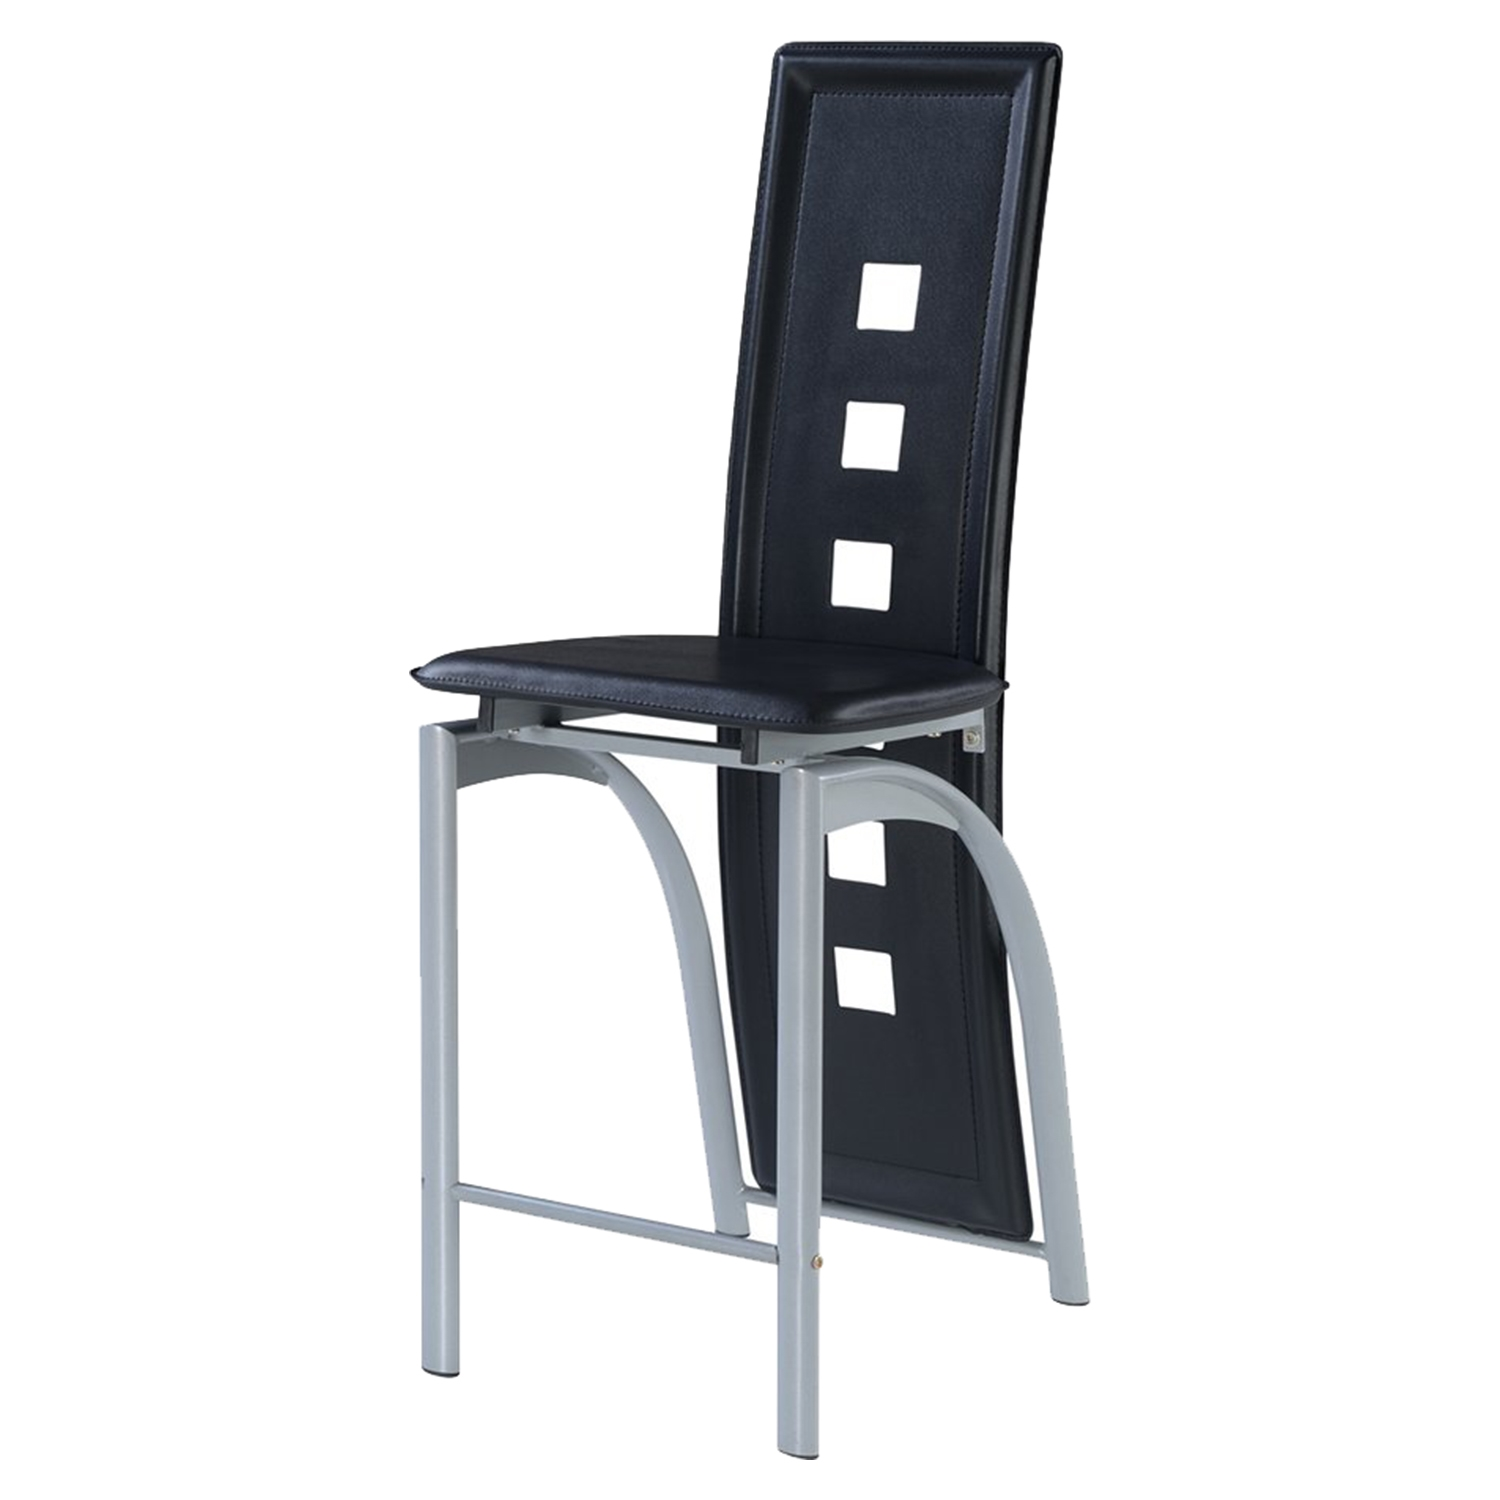 Sophia Bar Stool in Black - GLO-D1058BS-M